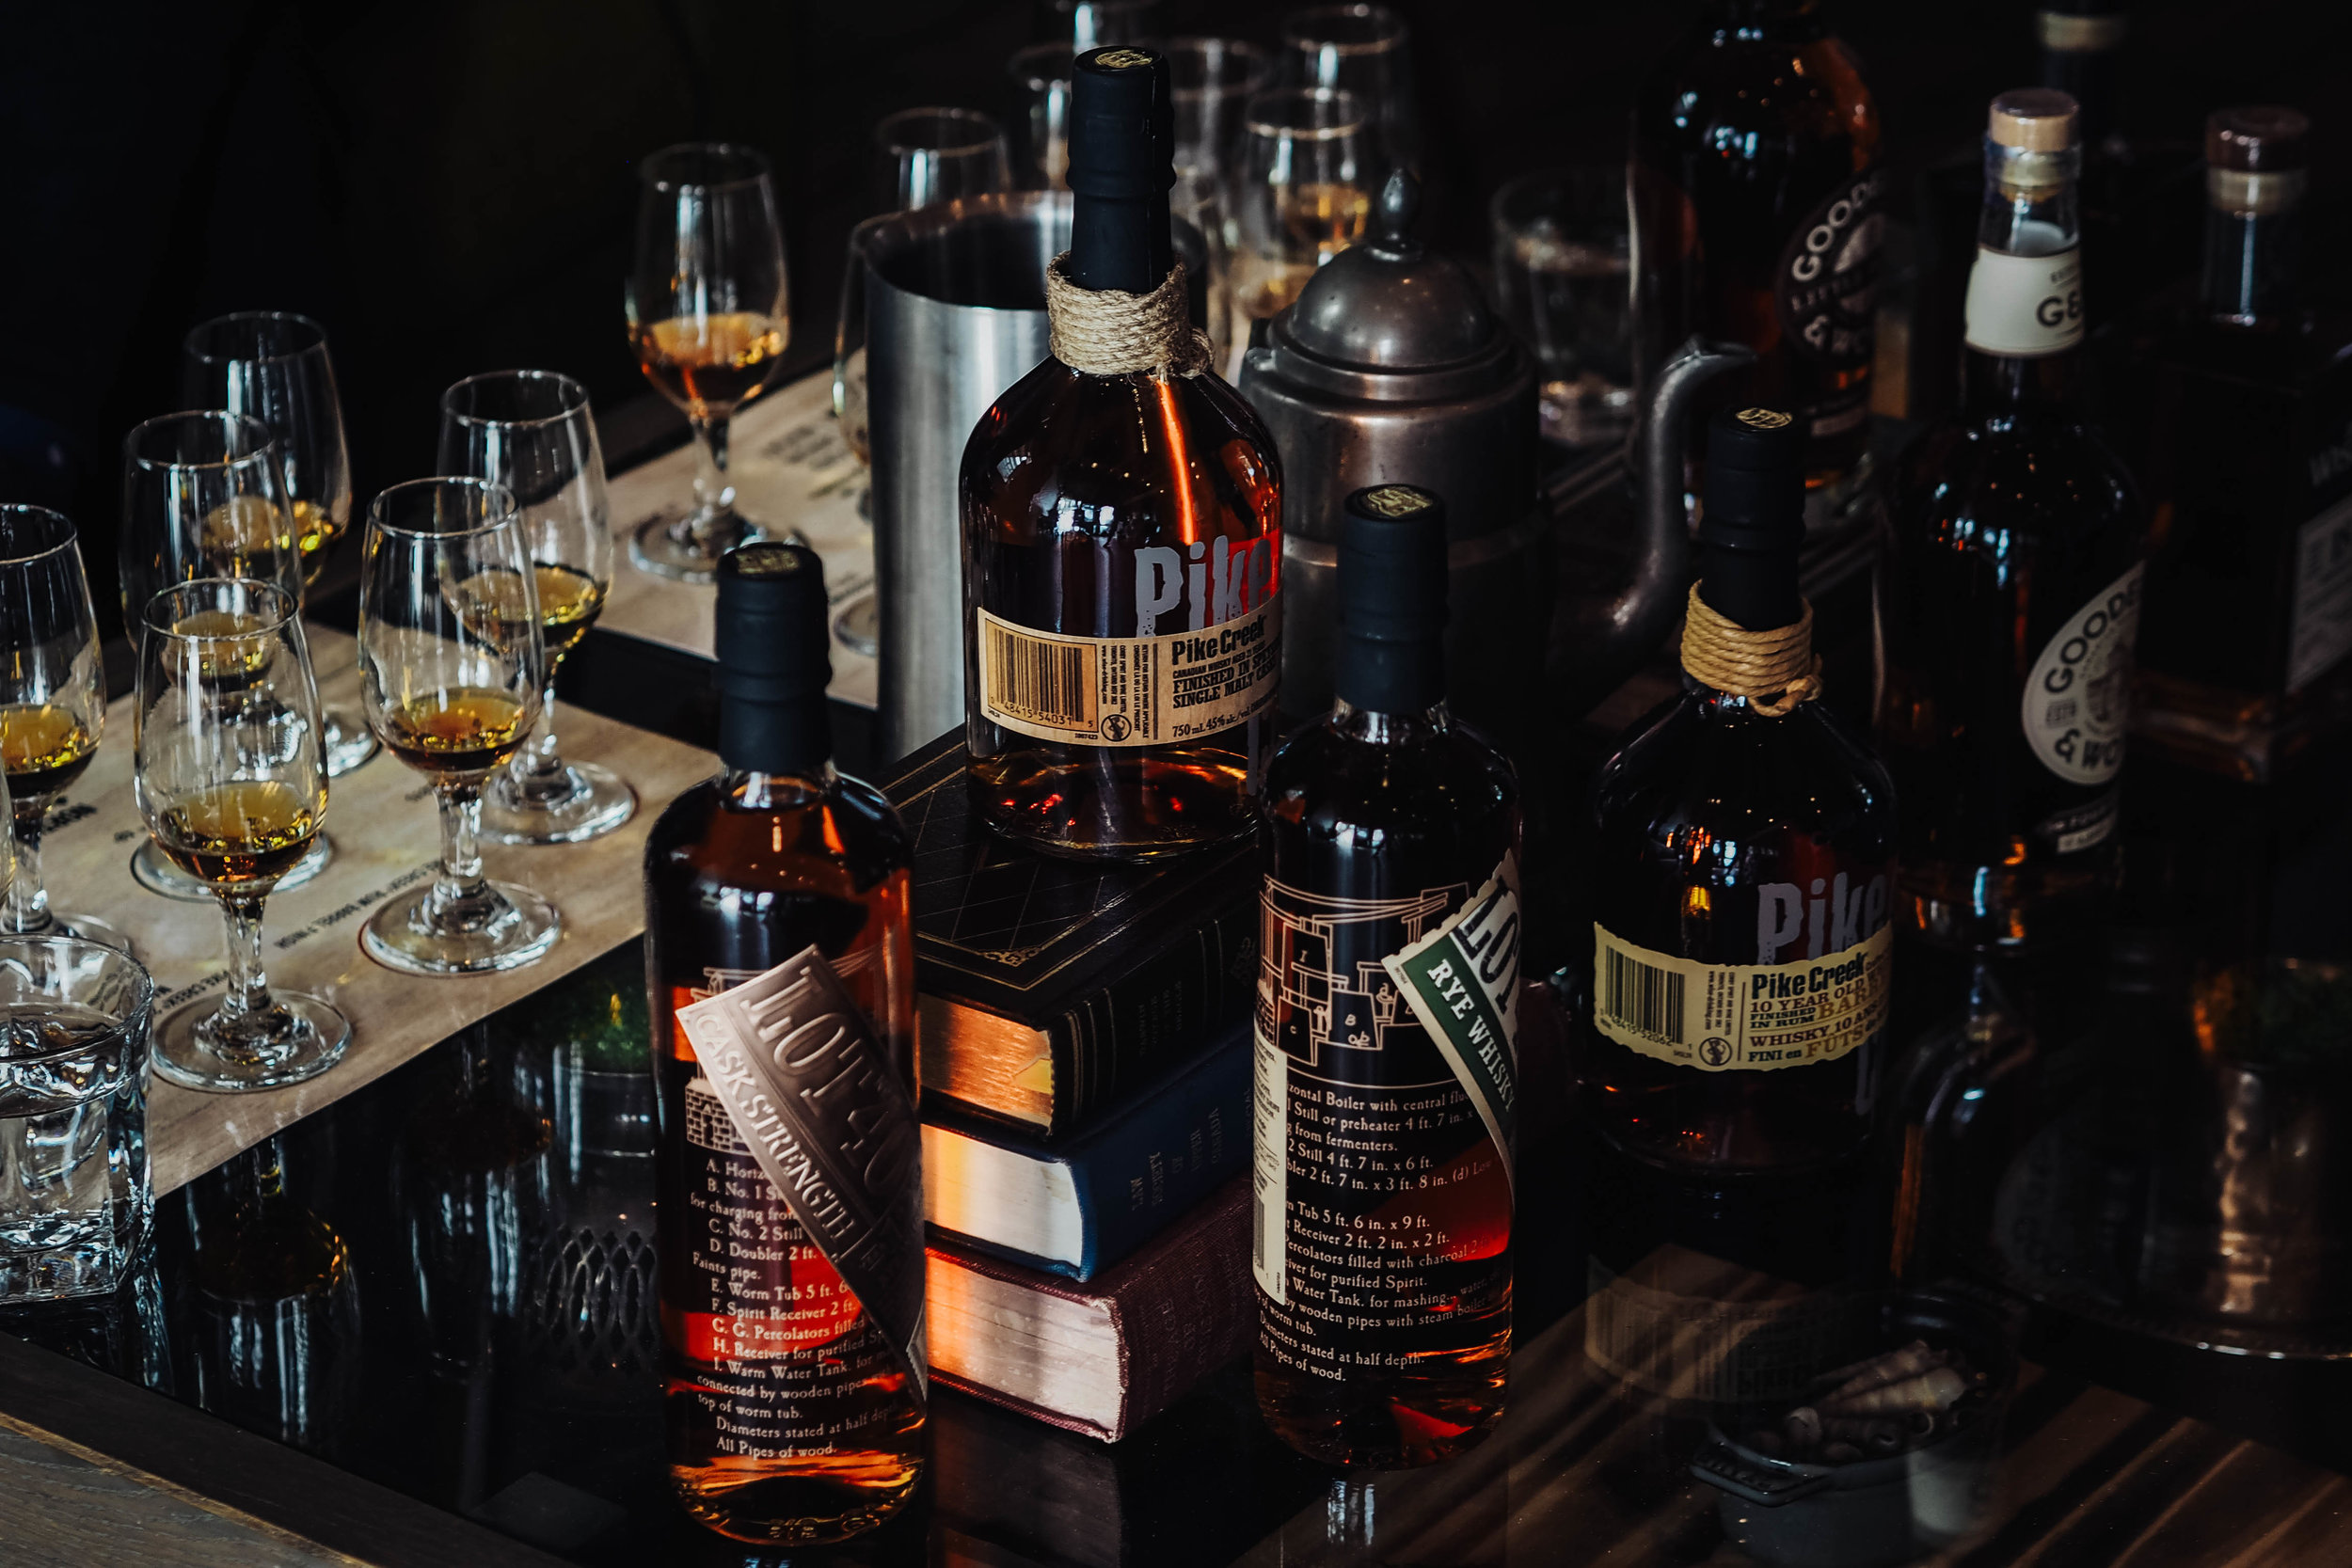 Northern Border Collection Rare Range Whisky Collection.